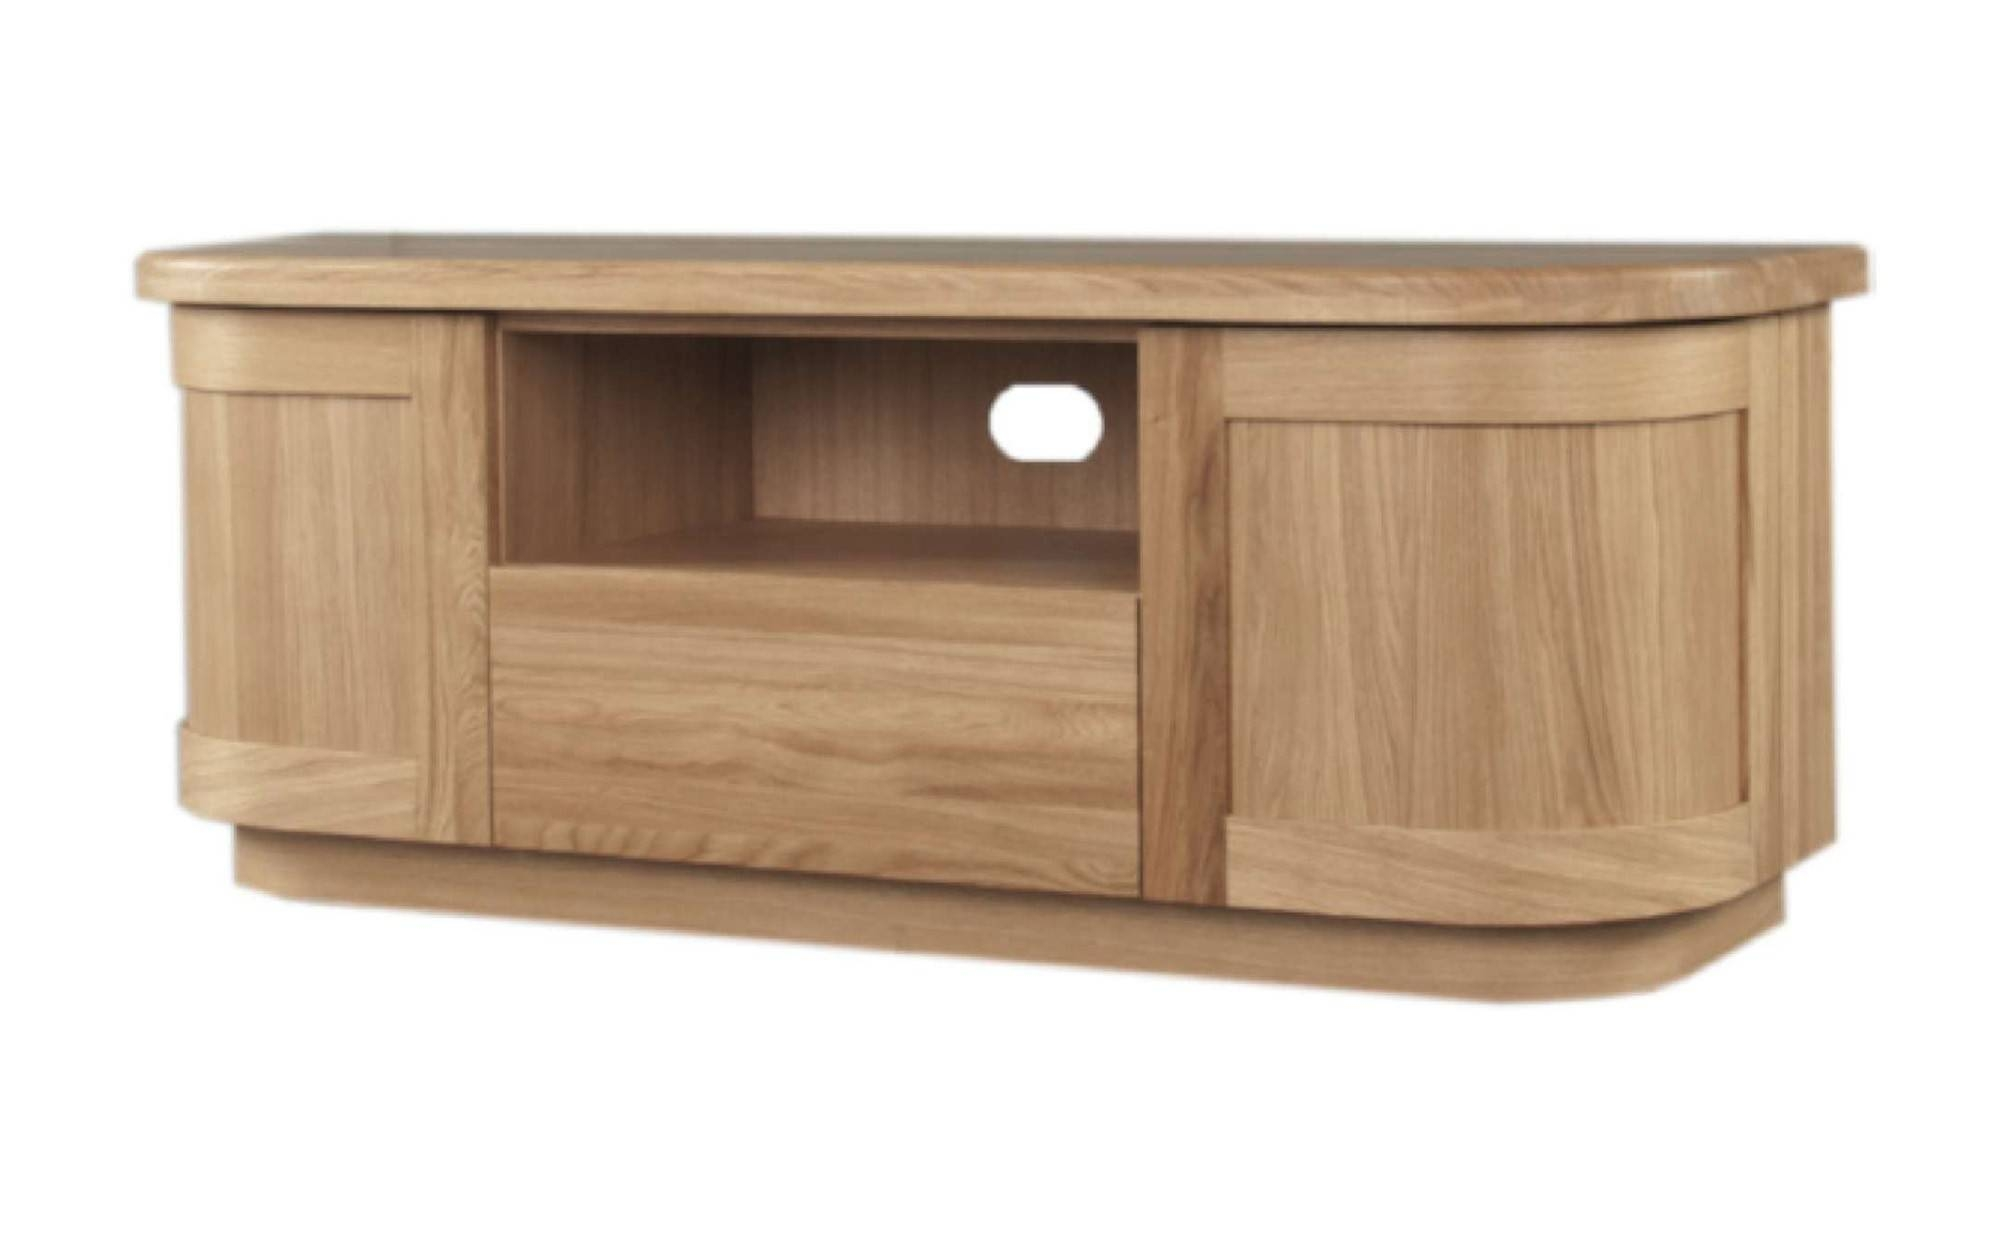 Sicily Solid Oak Tv Unit | Ice Interiors for Solid Oak Tv Cabinets (Image 14 of 15)